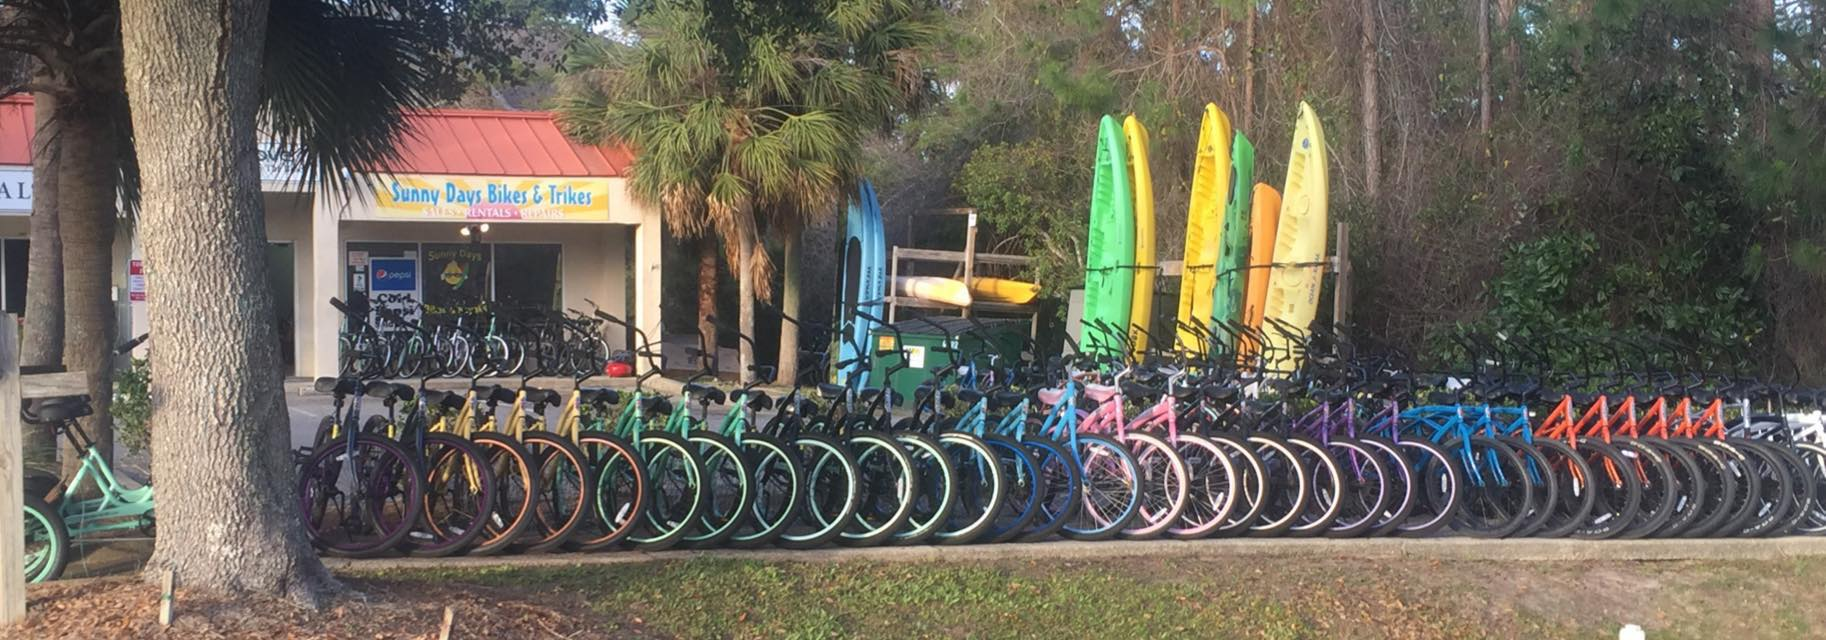 Sunny Days Bike & Beach Sports | Bike Rentals at 5311 East County - Santa Rosa Beach FL - Reviews - Photos - Phone Number